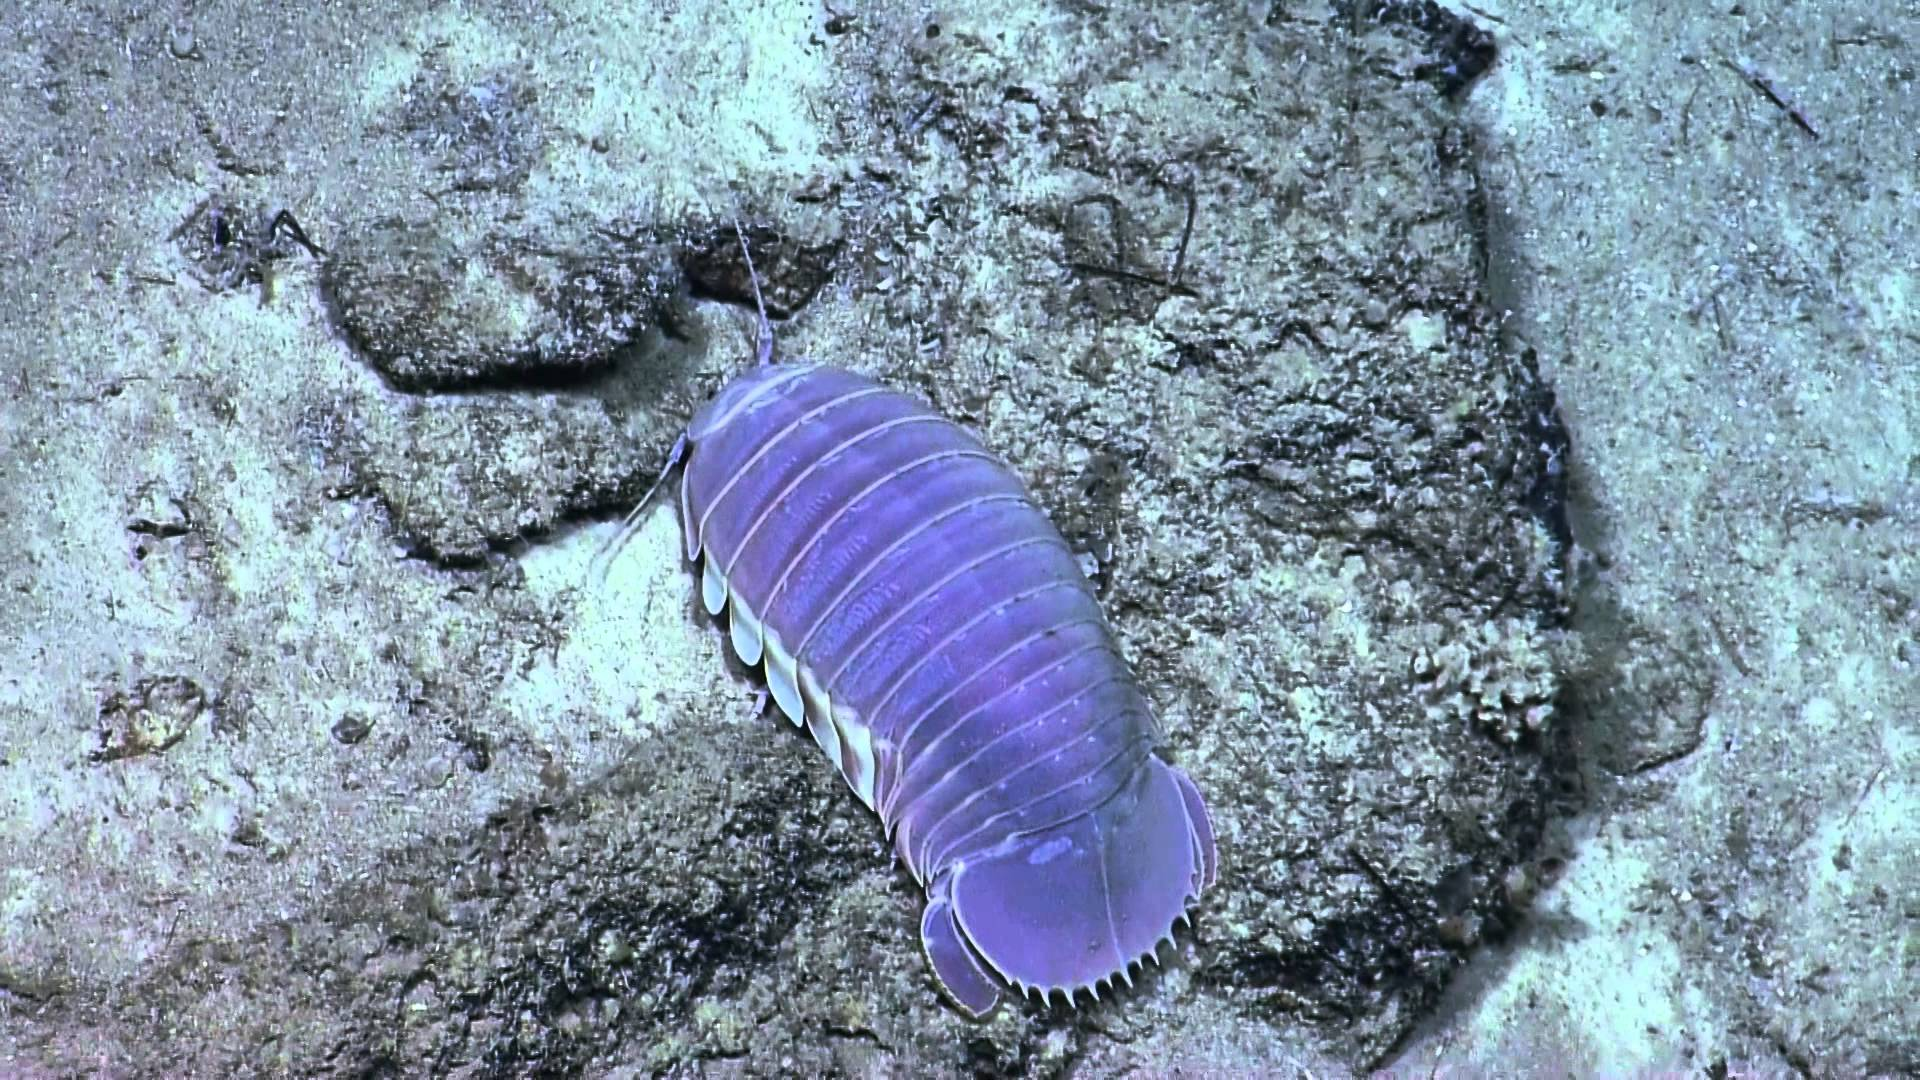 Images of Isopod | 1920x1080